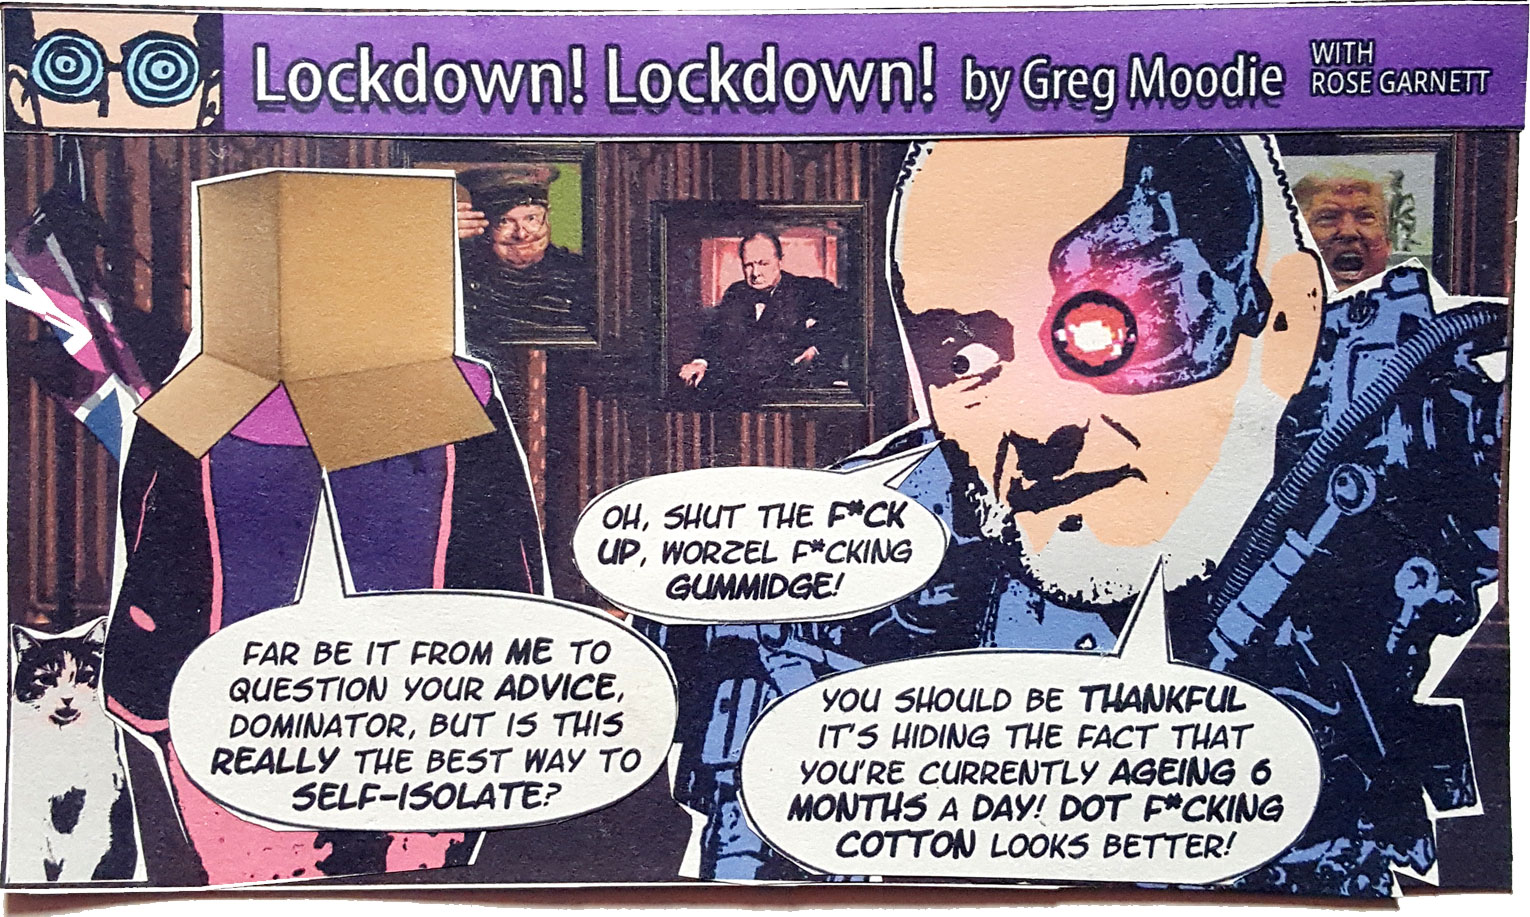 Lockdown! Lockdown! (unexpurgated version)